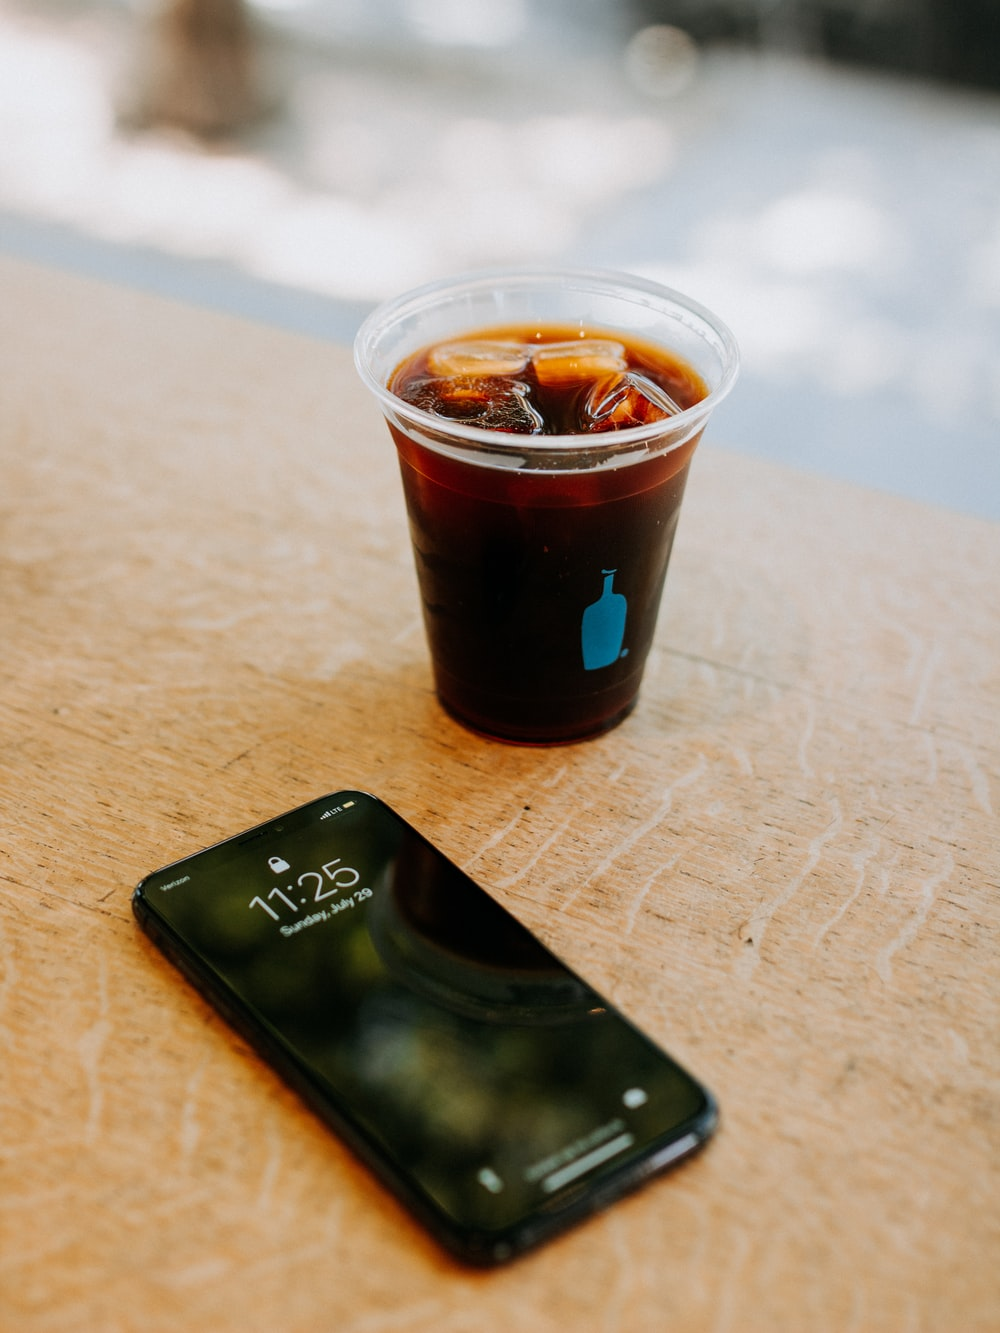 black iPhone 7 beside clear disposable cup filled with beverage with ice cubes